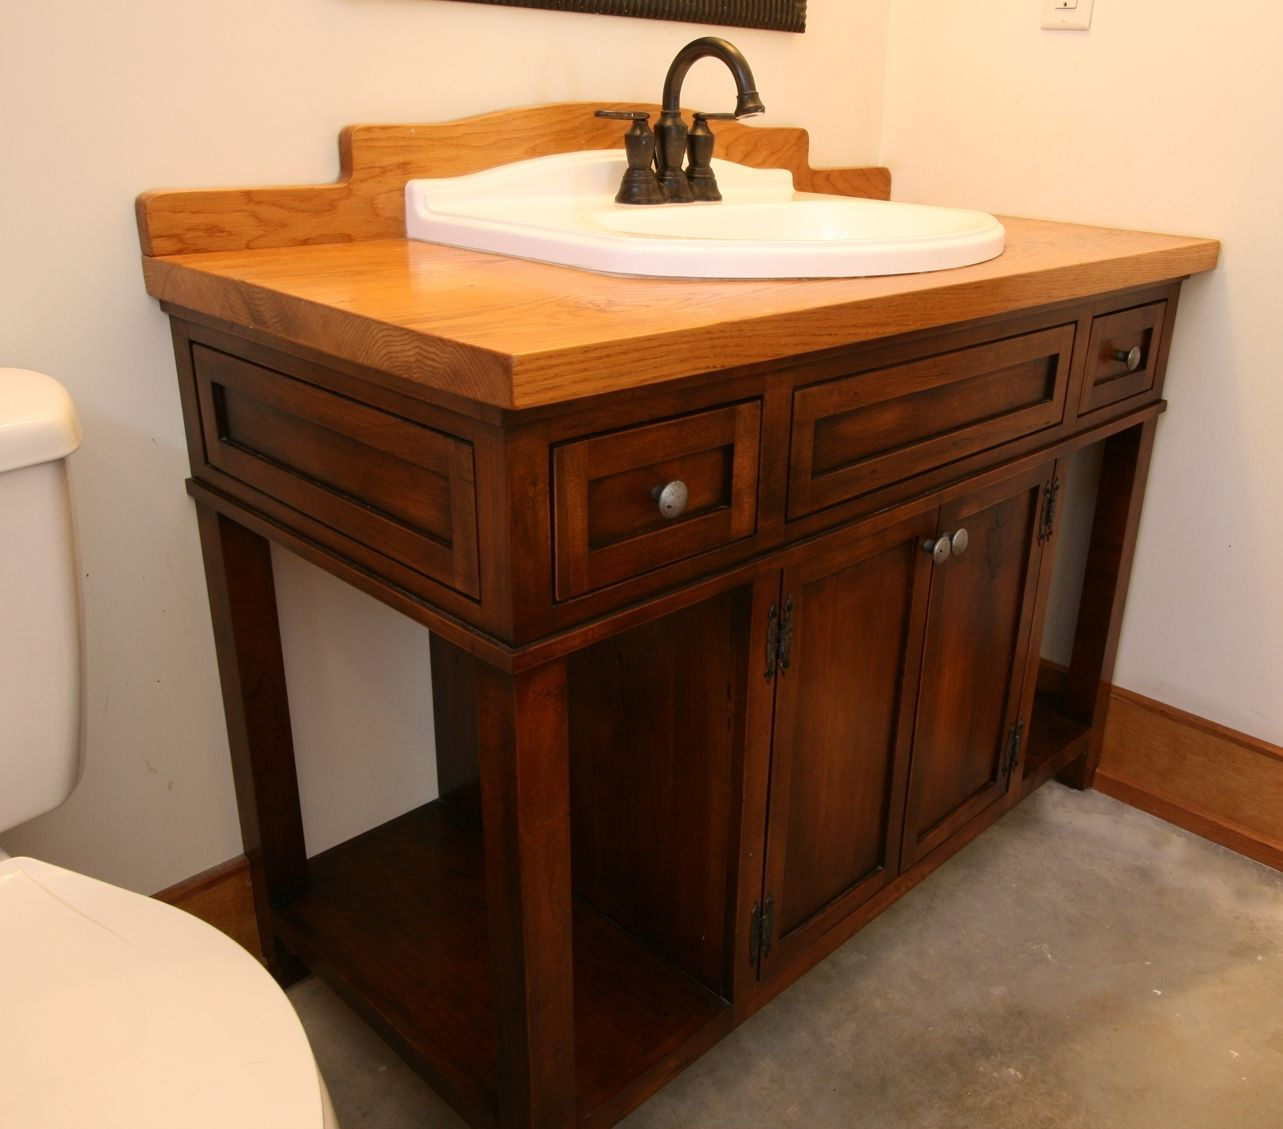 Custom Made Custom Wood Bath Vanity With Reclaimed Sink - Hand Crafted Custom Wood Bath Vanity With Reclaimed Sink By MOSS